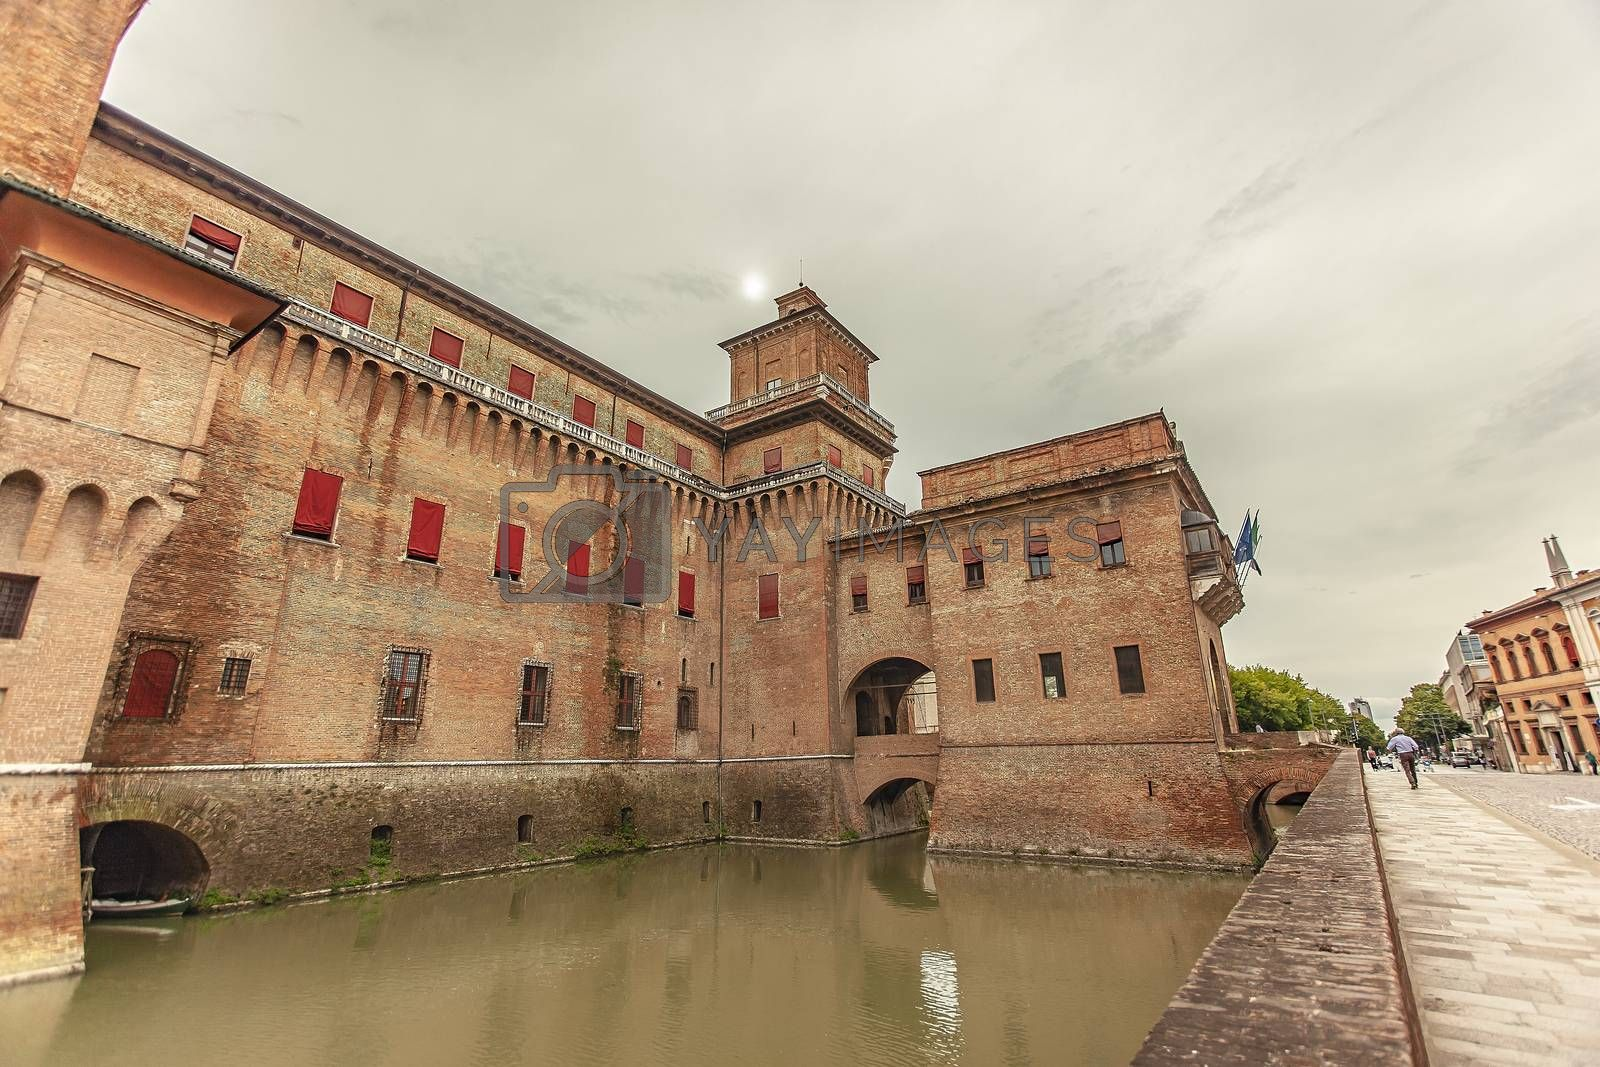 Detail of Ferrara's castle in Italy, an example of medieval architecture in the historical italian city